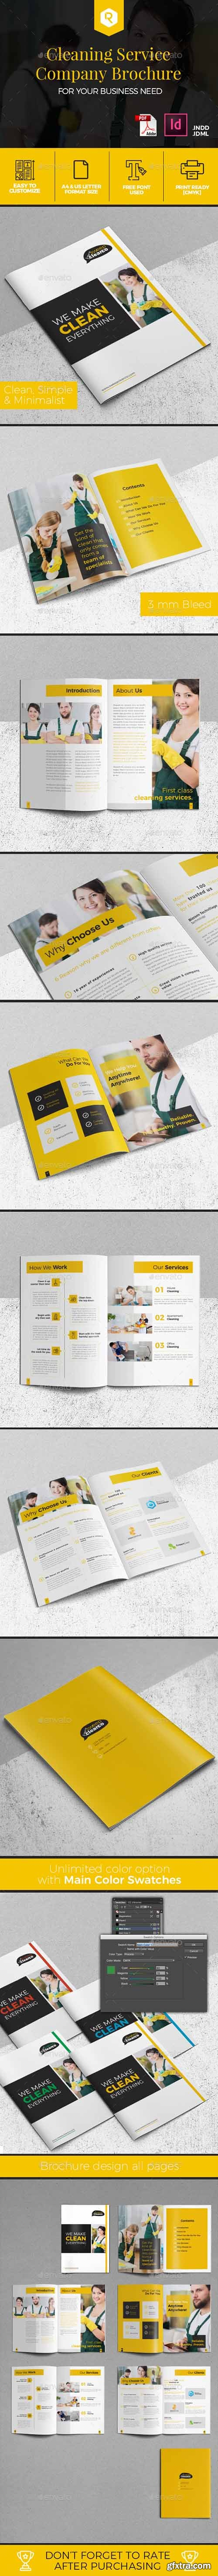 Cleaning Service Company Brochure 19578071